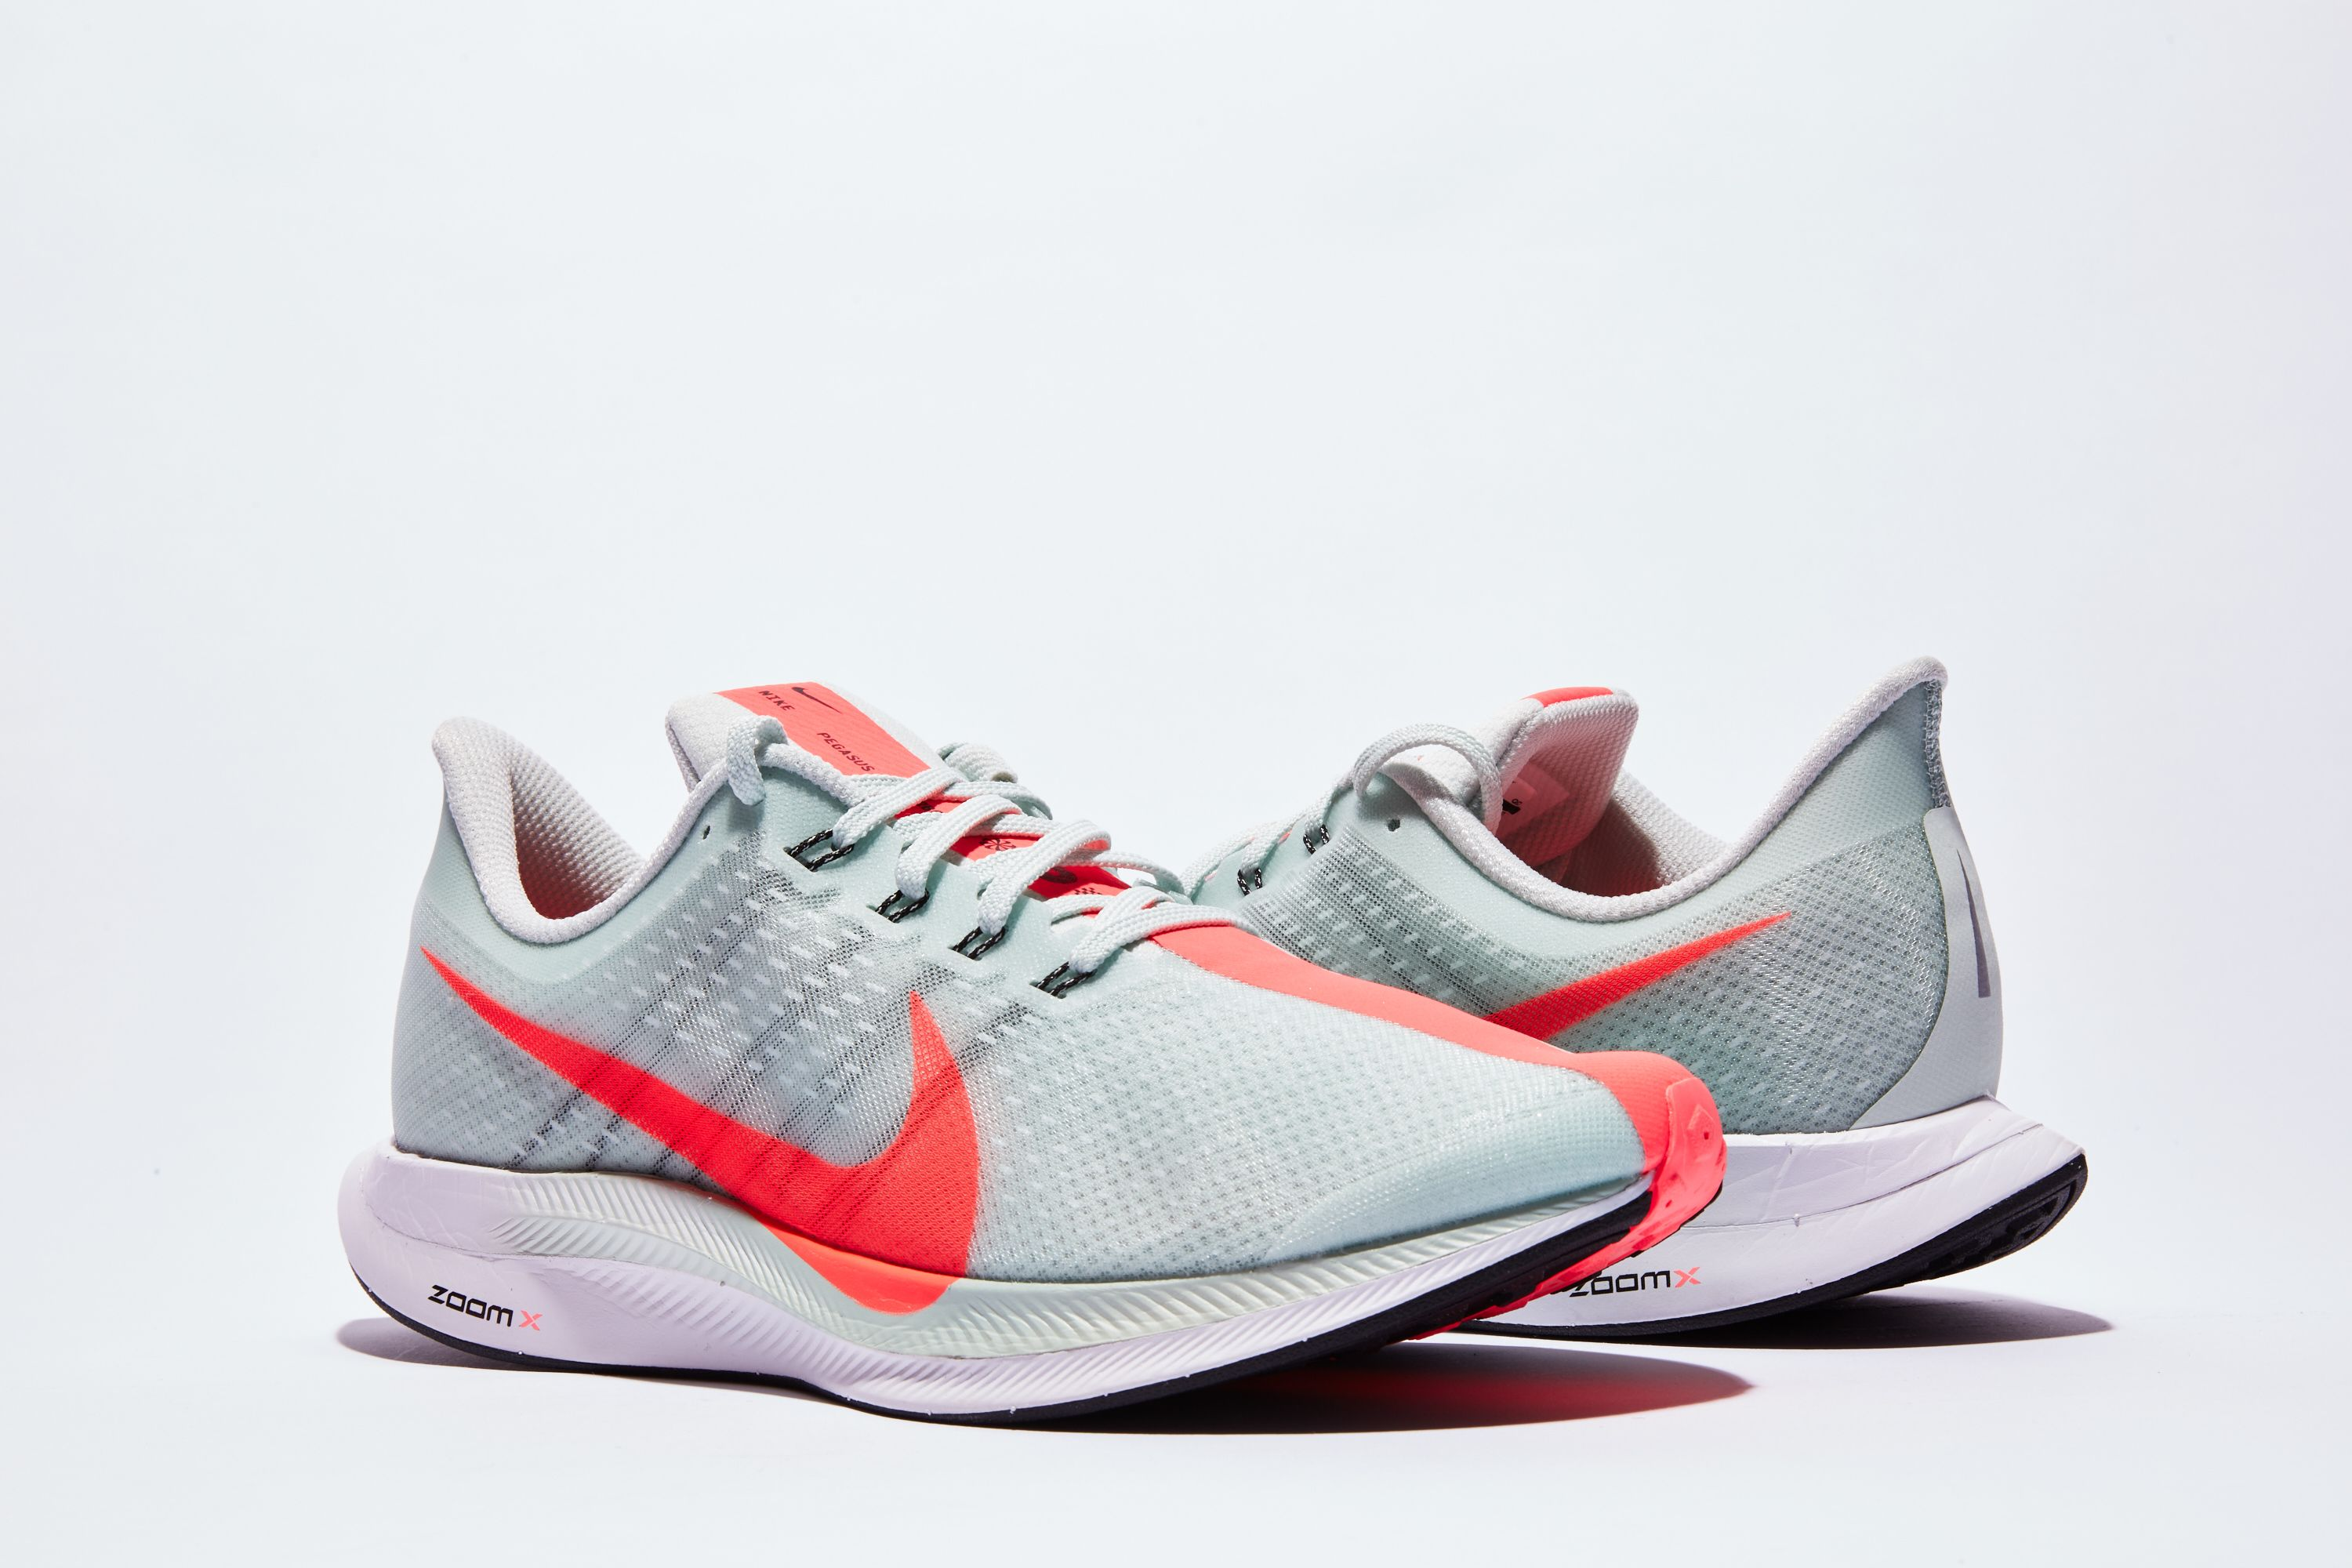 e6c65c3b5 Nike Zoom Pegasus 35 Turbo - Running Shoes for Speed